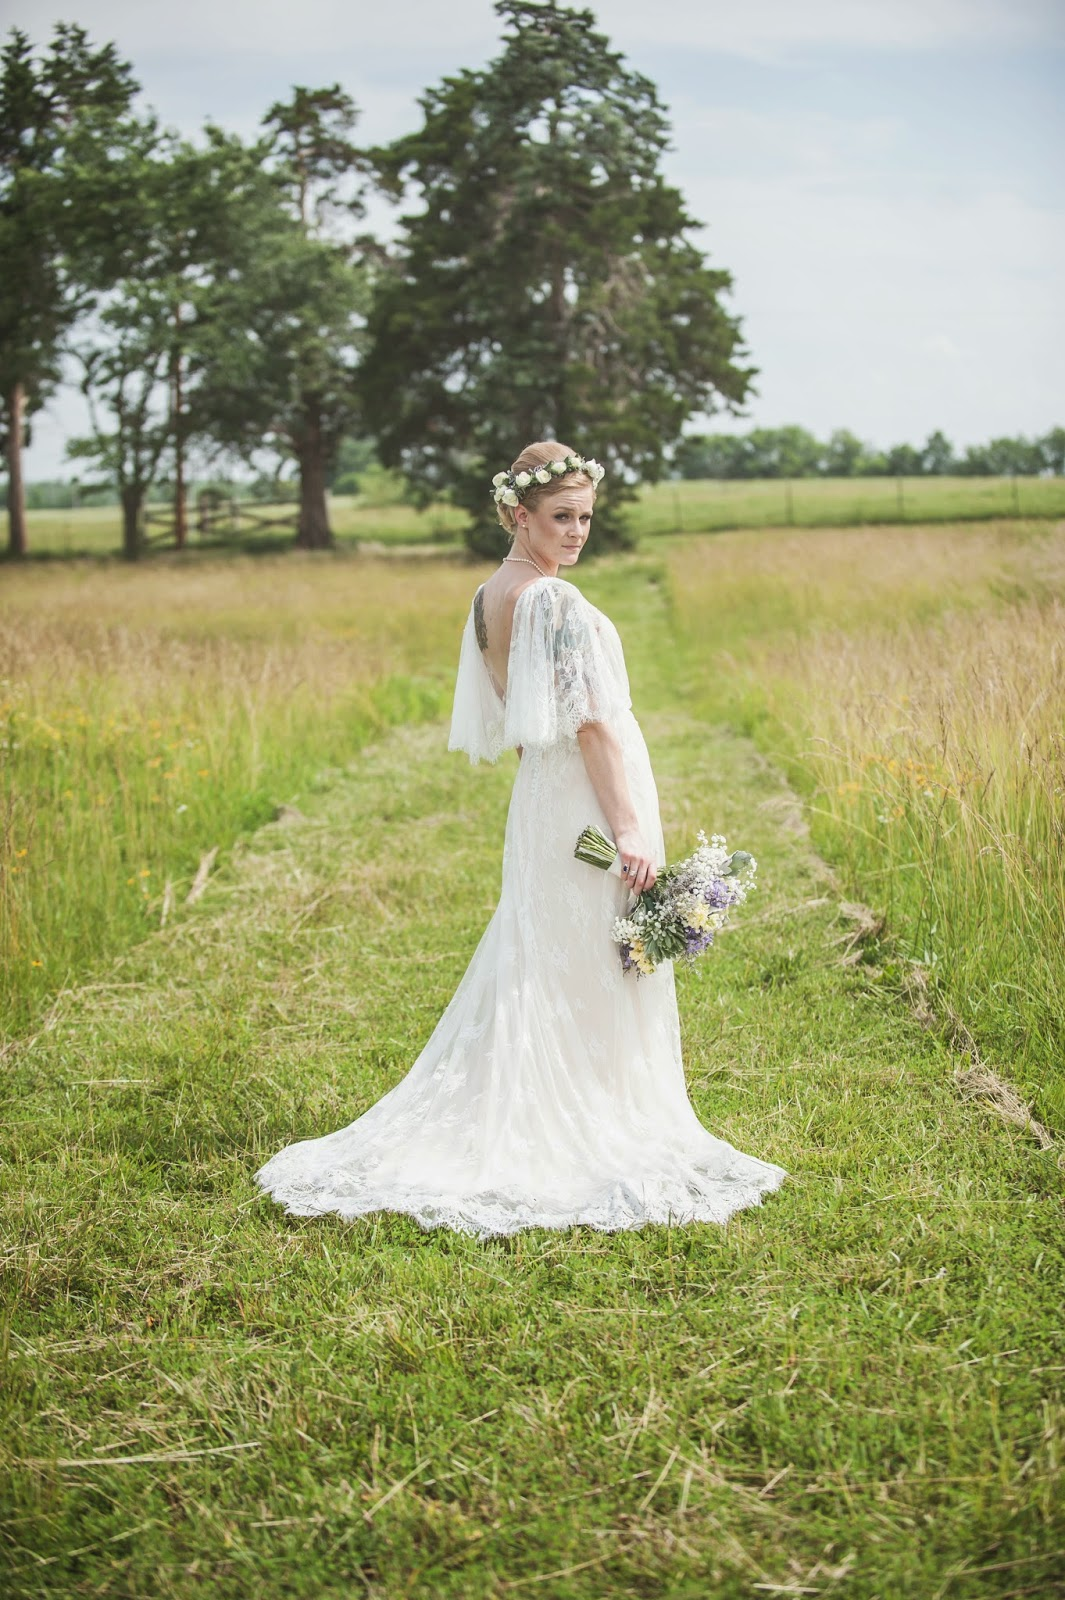 Vintage lace wedding gown with open back and  flower crown